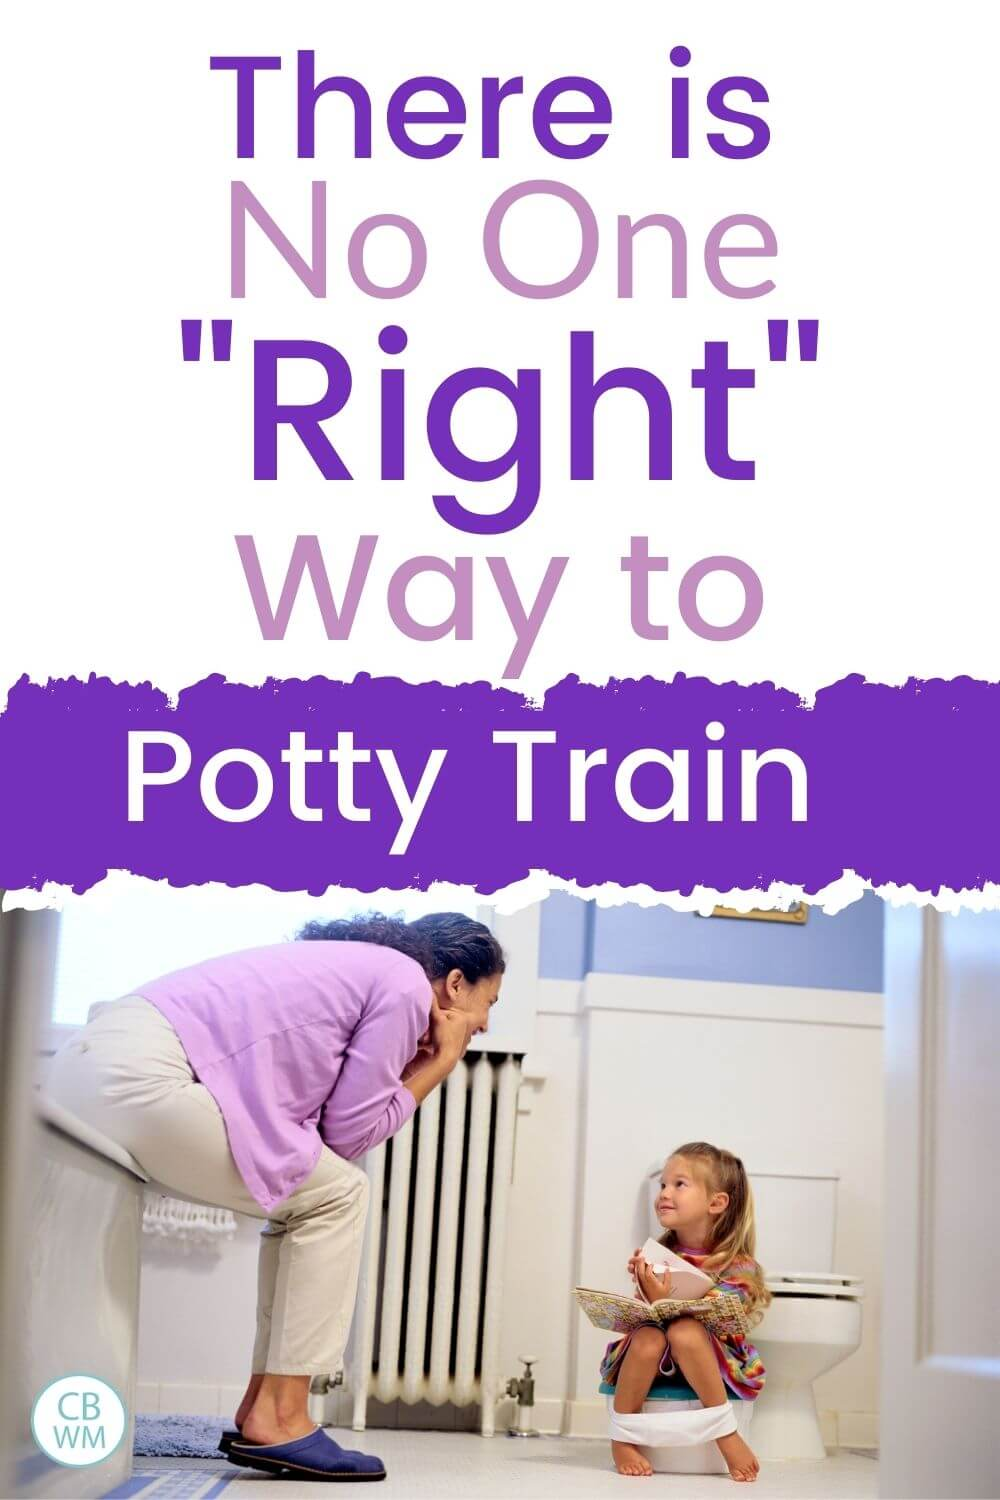 Mom with daughter while potty training